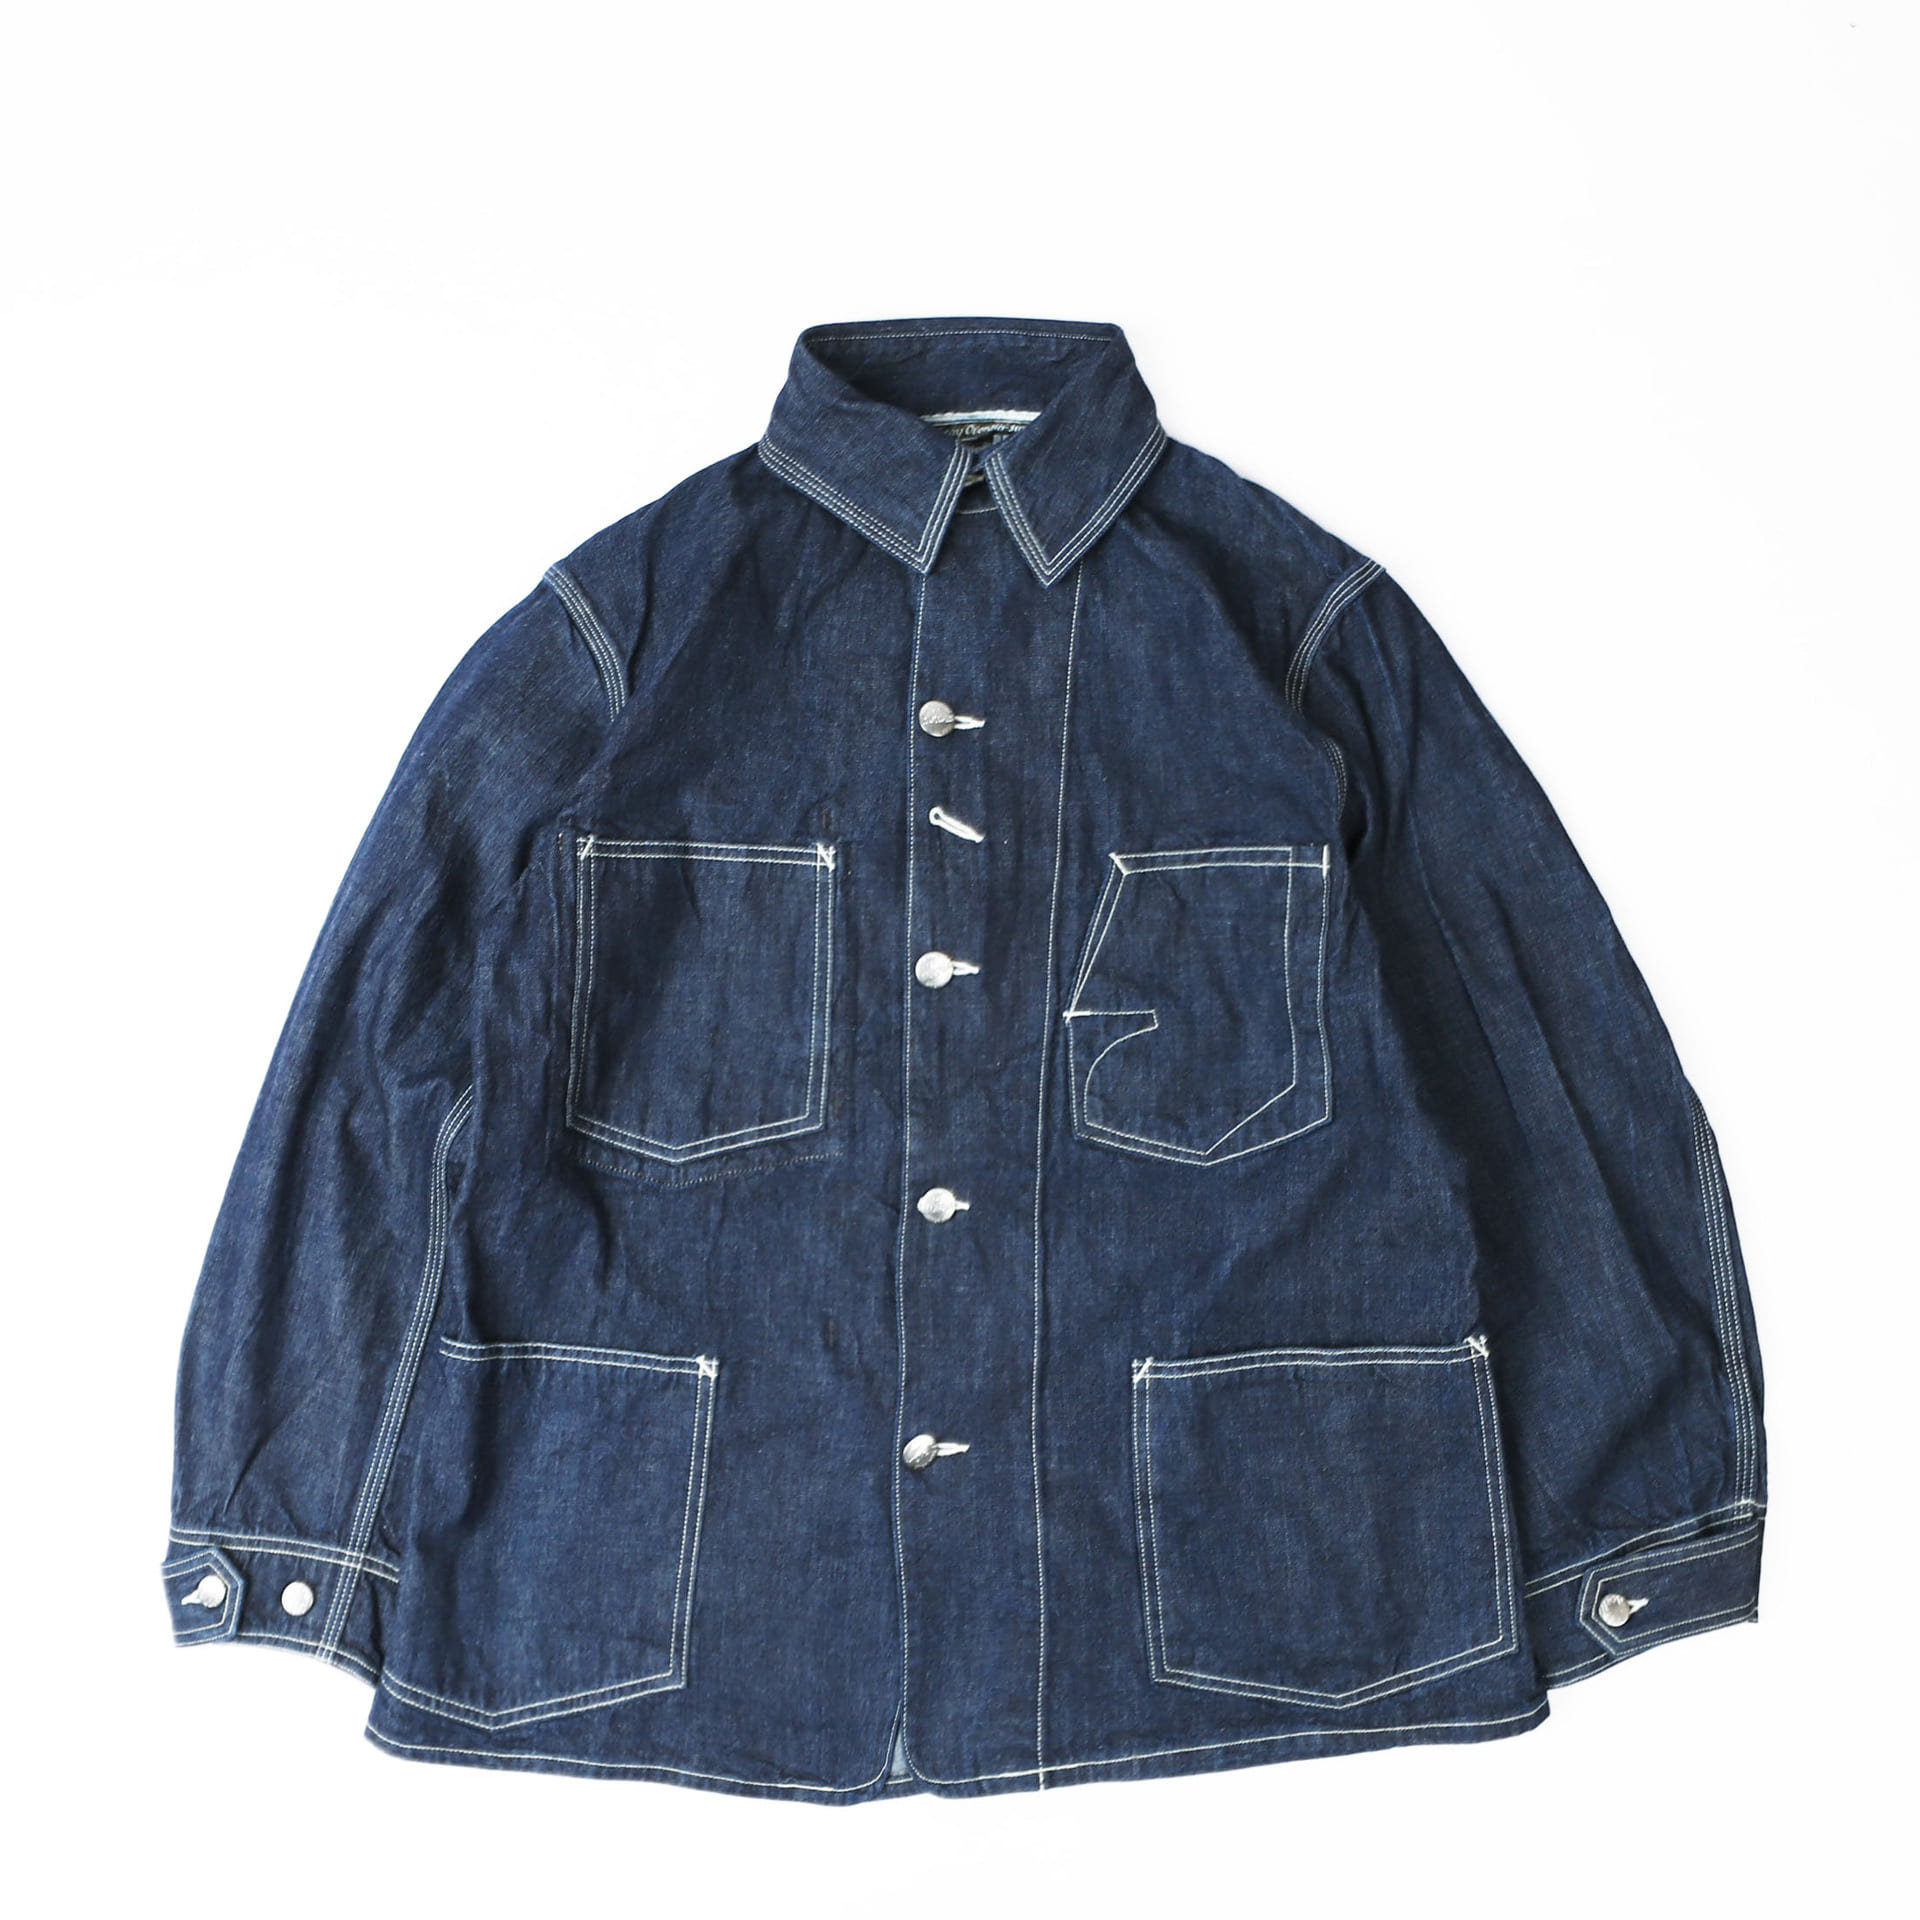 [IRON ALL FACTORIES CO.]Work JacketLot 100 Denim Jacket(10oz Indigo Denim)